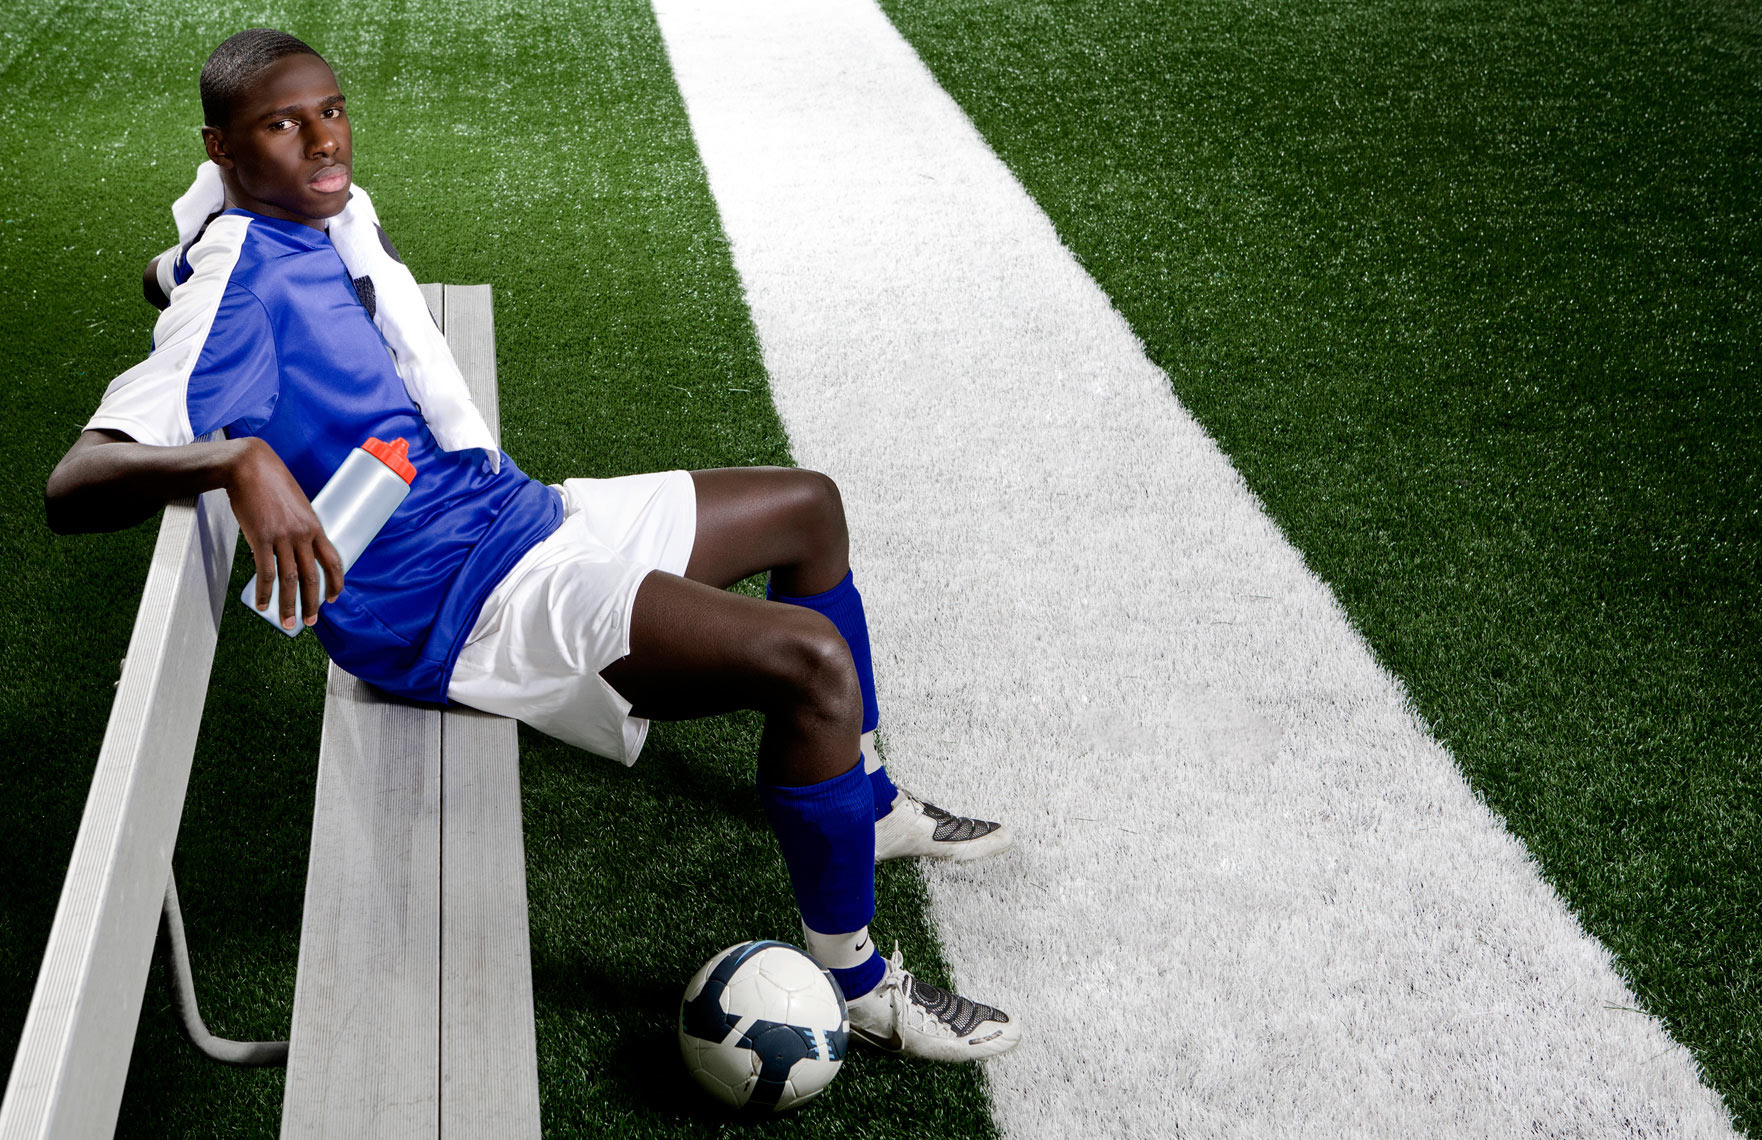 advertising-sports-portrait-espn-soccer-detroit-gatorade-commercial-photographer-scott-stewart